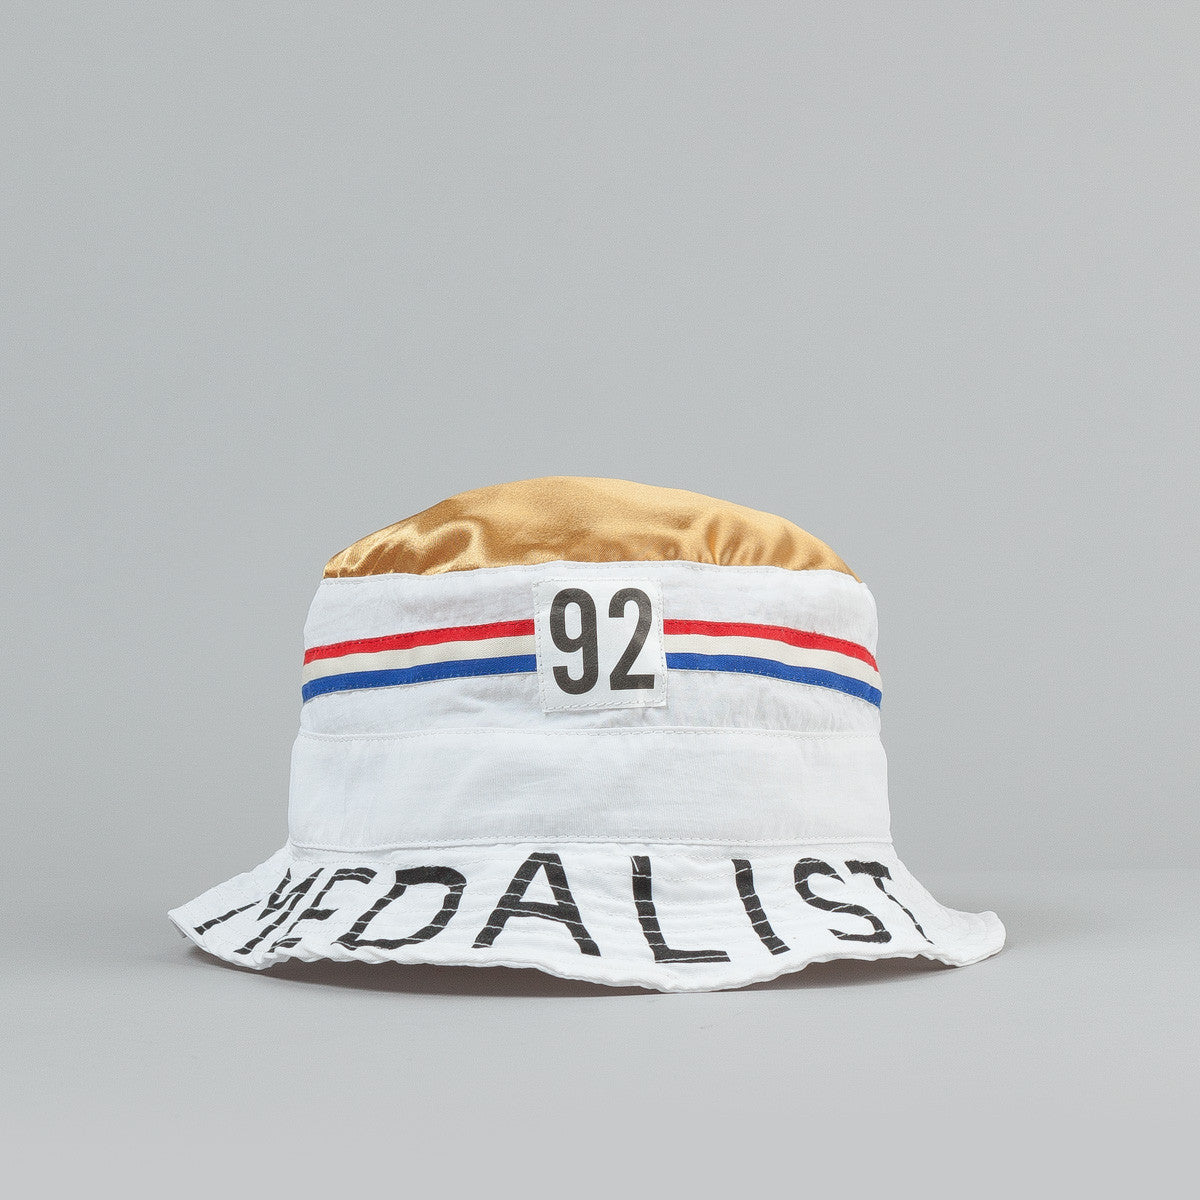 The Decades Gold Medalist Bucket Hat - Red / White / Blue